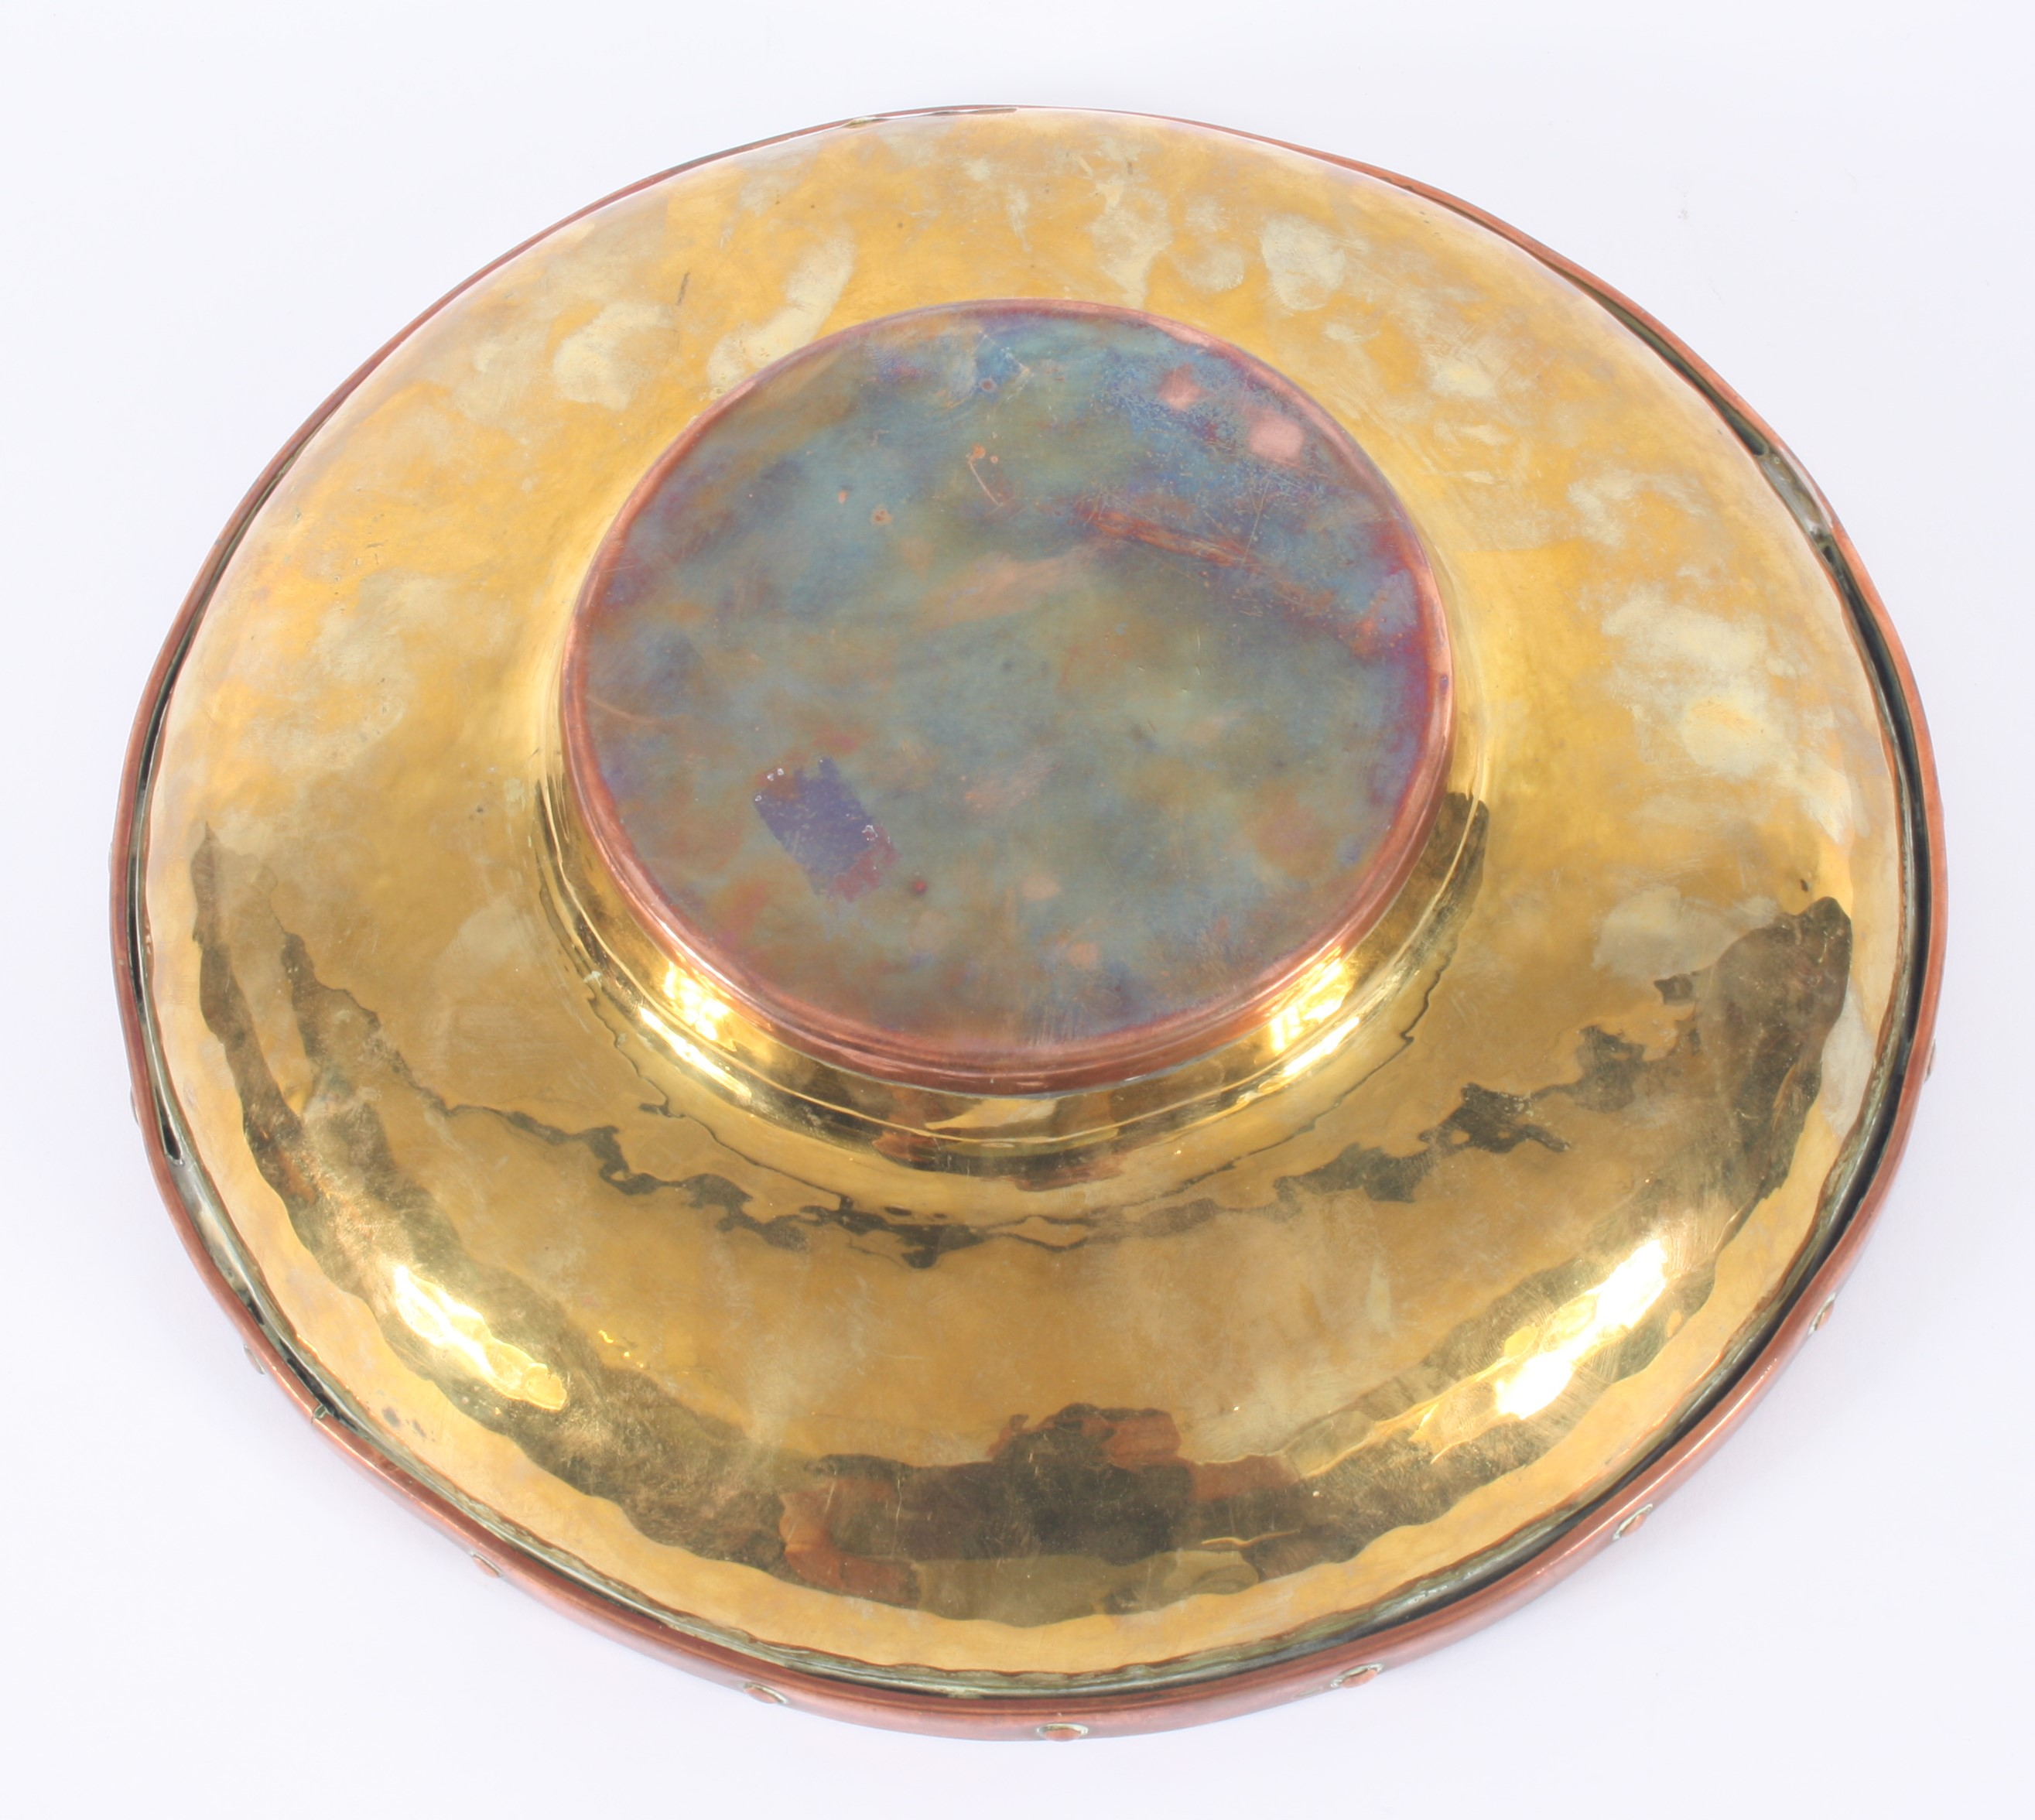 Lot 43 - An Arts and Crafts brass and copper bowl, height 7cm, diameter 28.